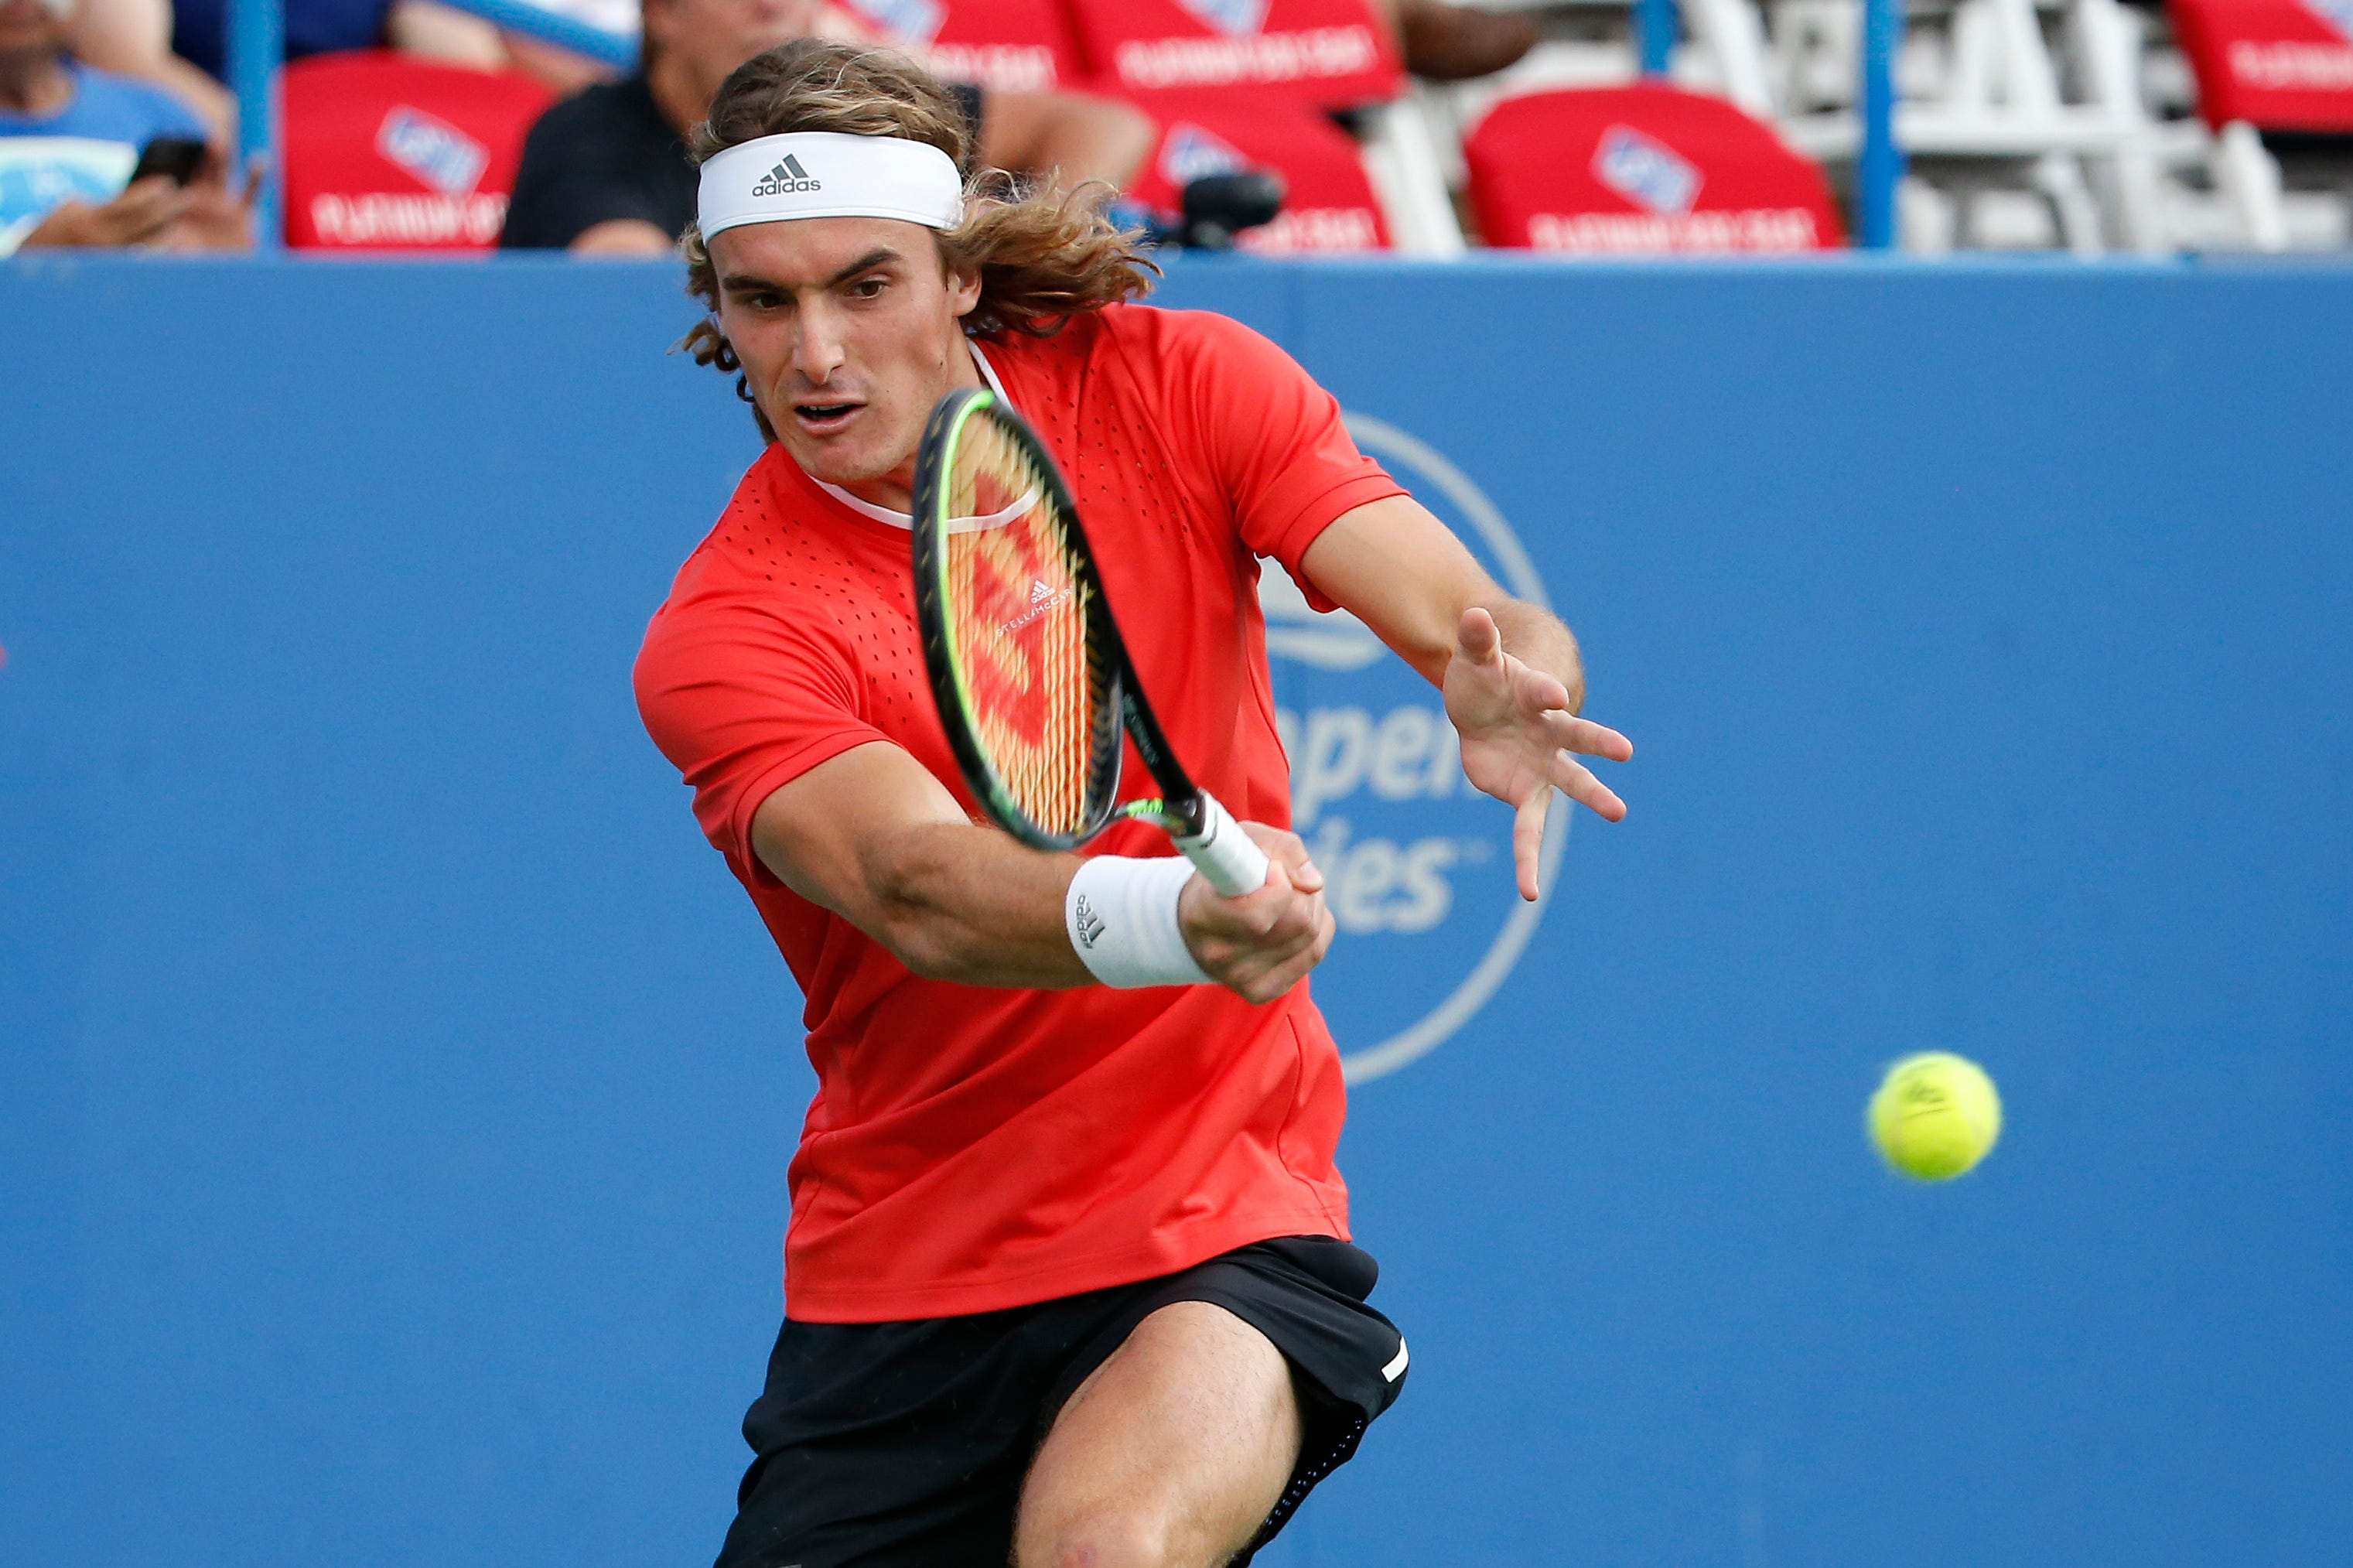 Stefanos Tsitsipas Craves For More Reaches Semifinals At Citi Open